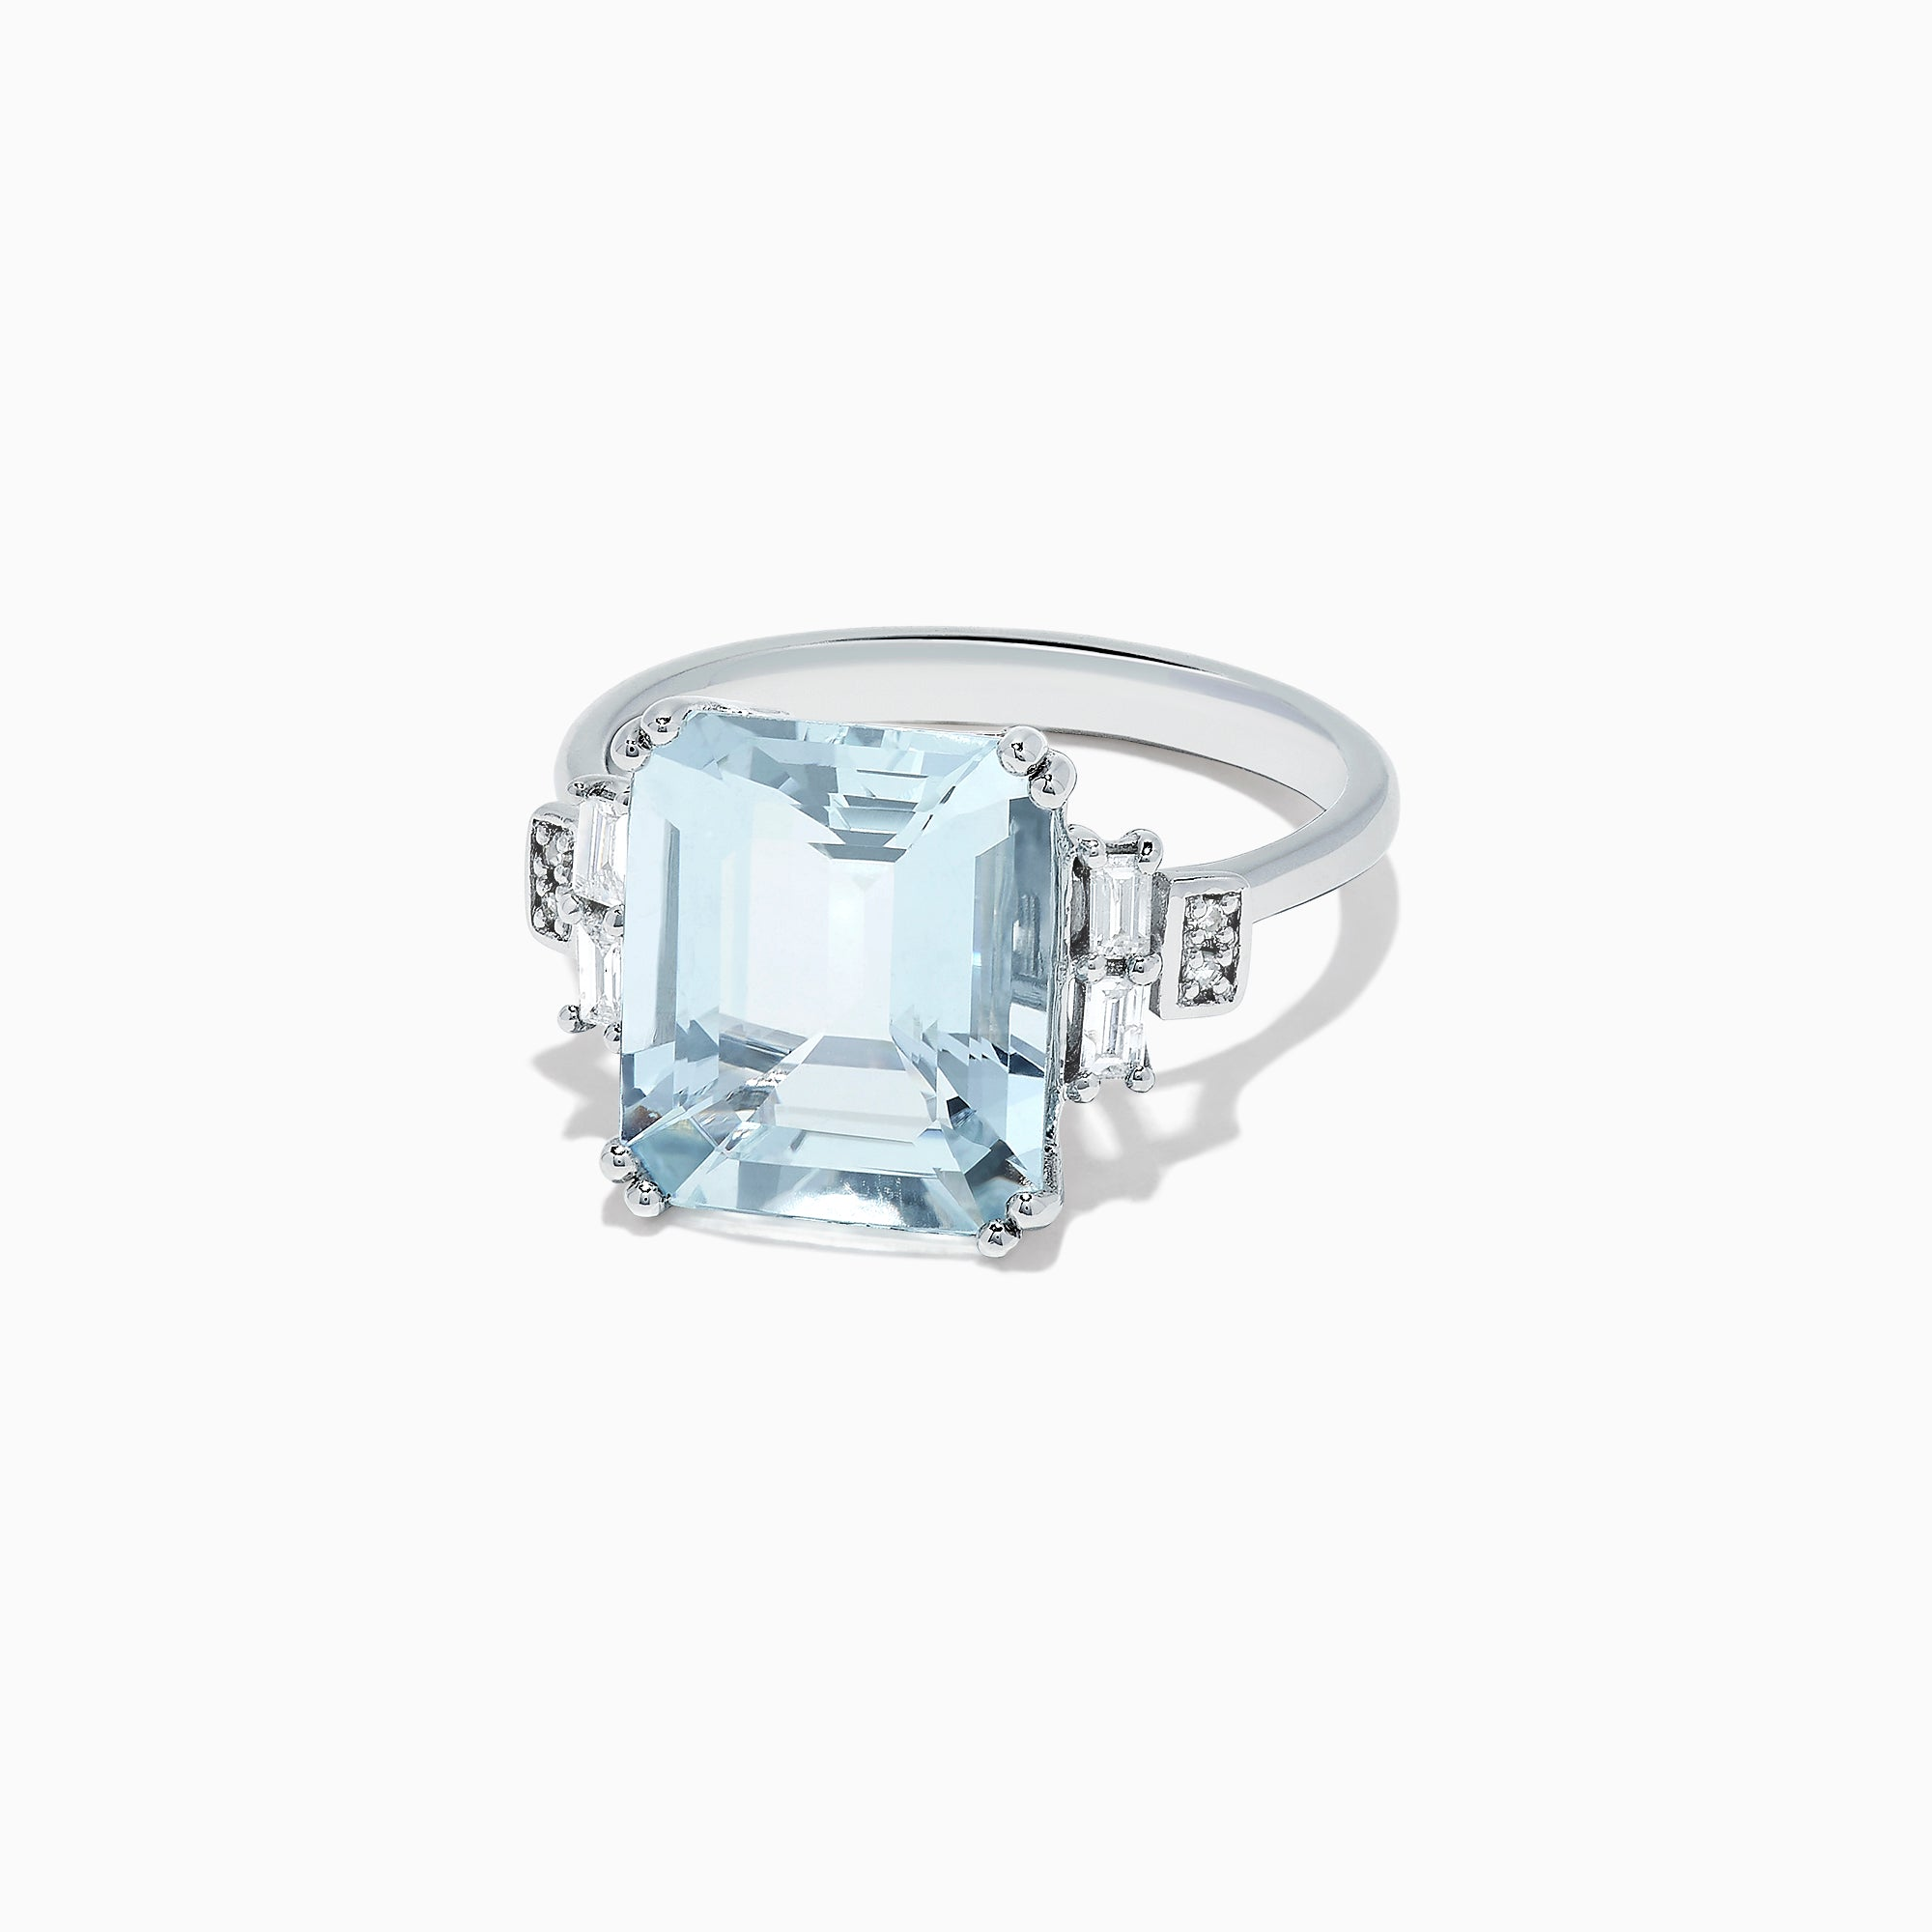 Effy Aquarius 14K White Gold Aquamarine and Diamond Ring, 5.05 TCW